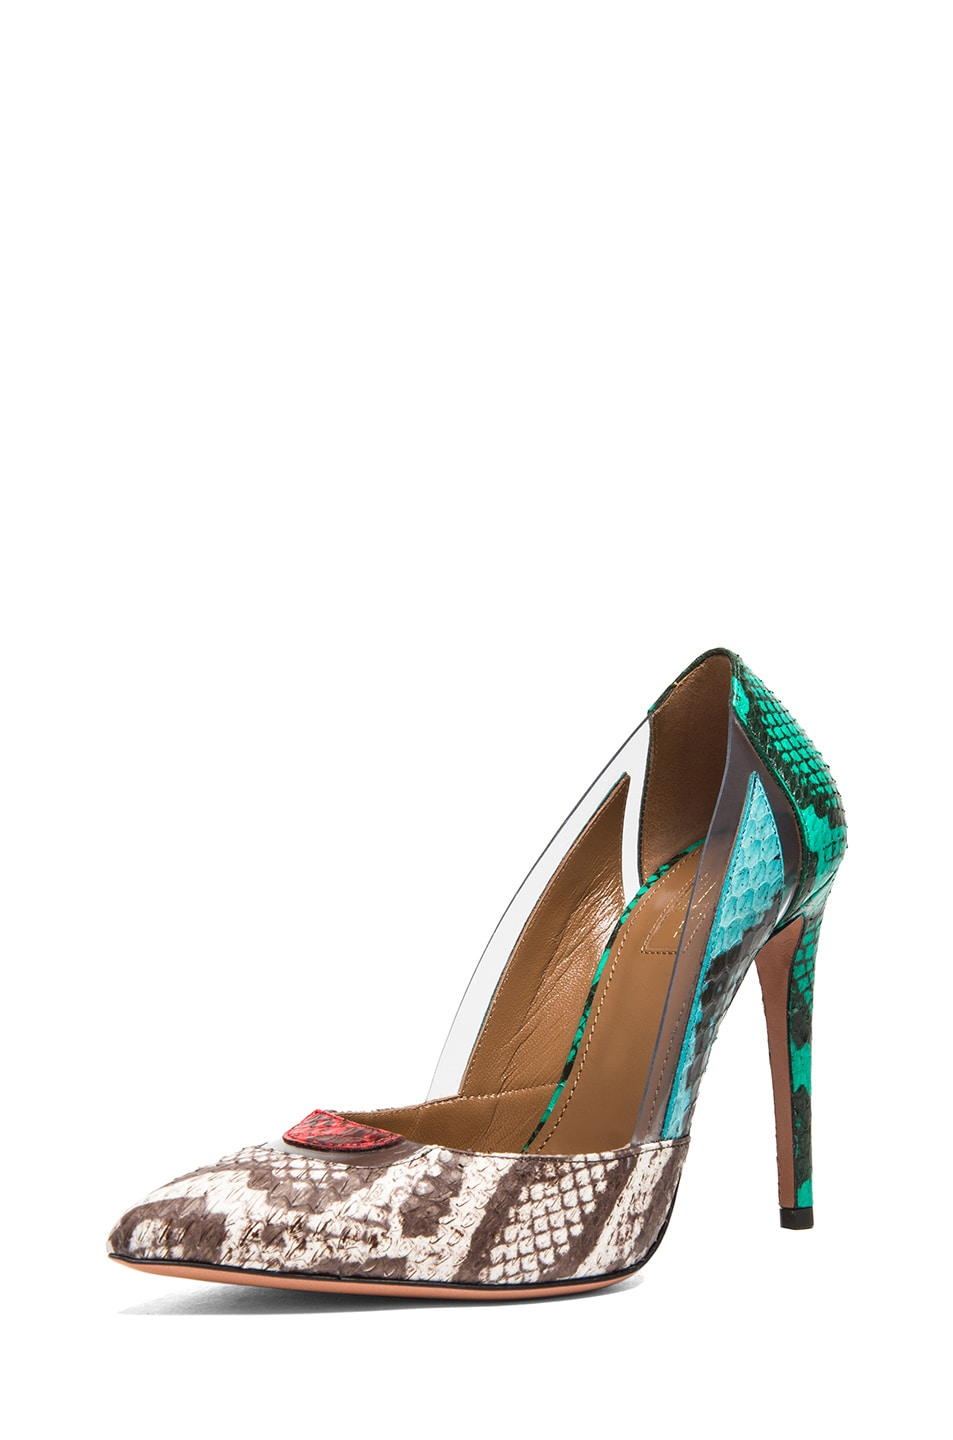 Image 2 of Aquazzura Positano Elaphe Snakeskin Heels in Multi